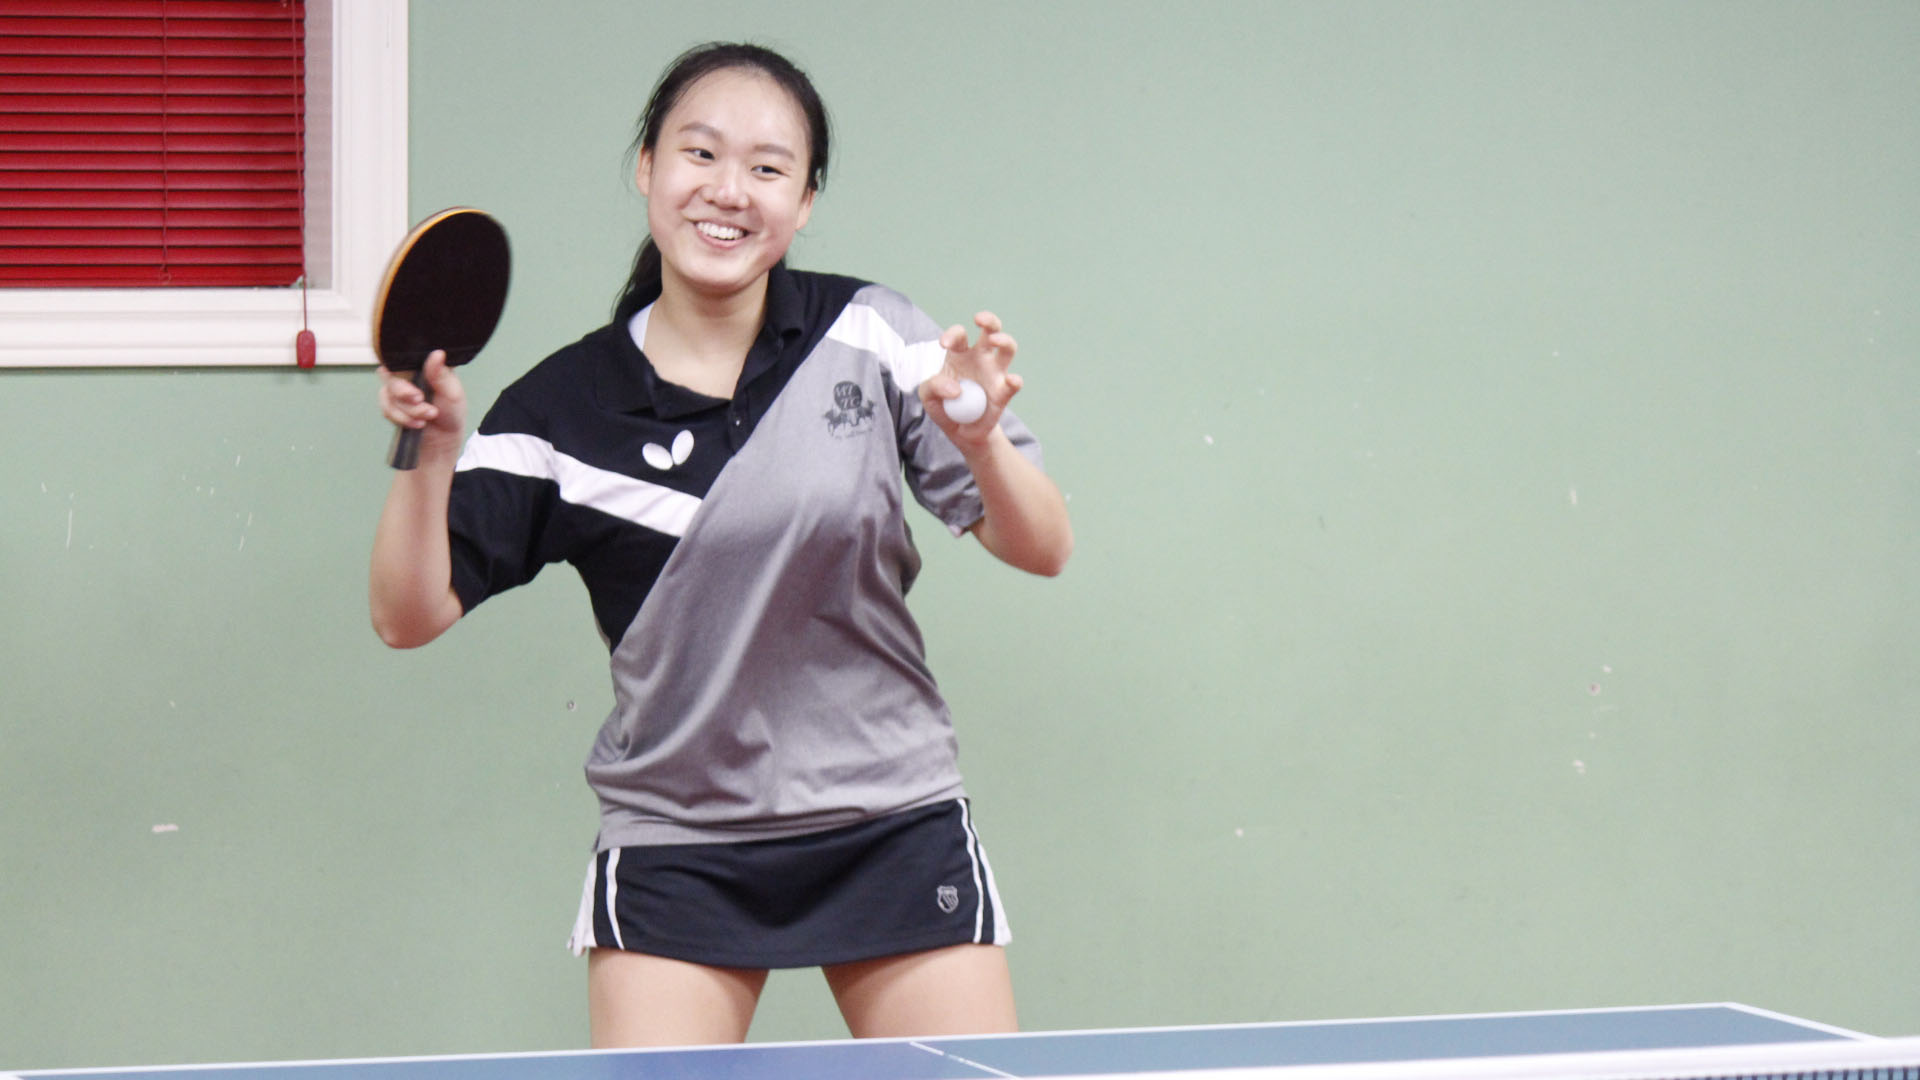 Ann Shiao practicing at the Academy